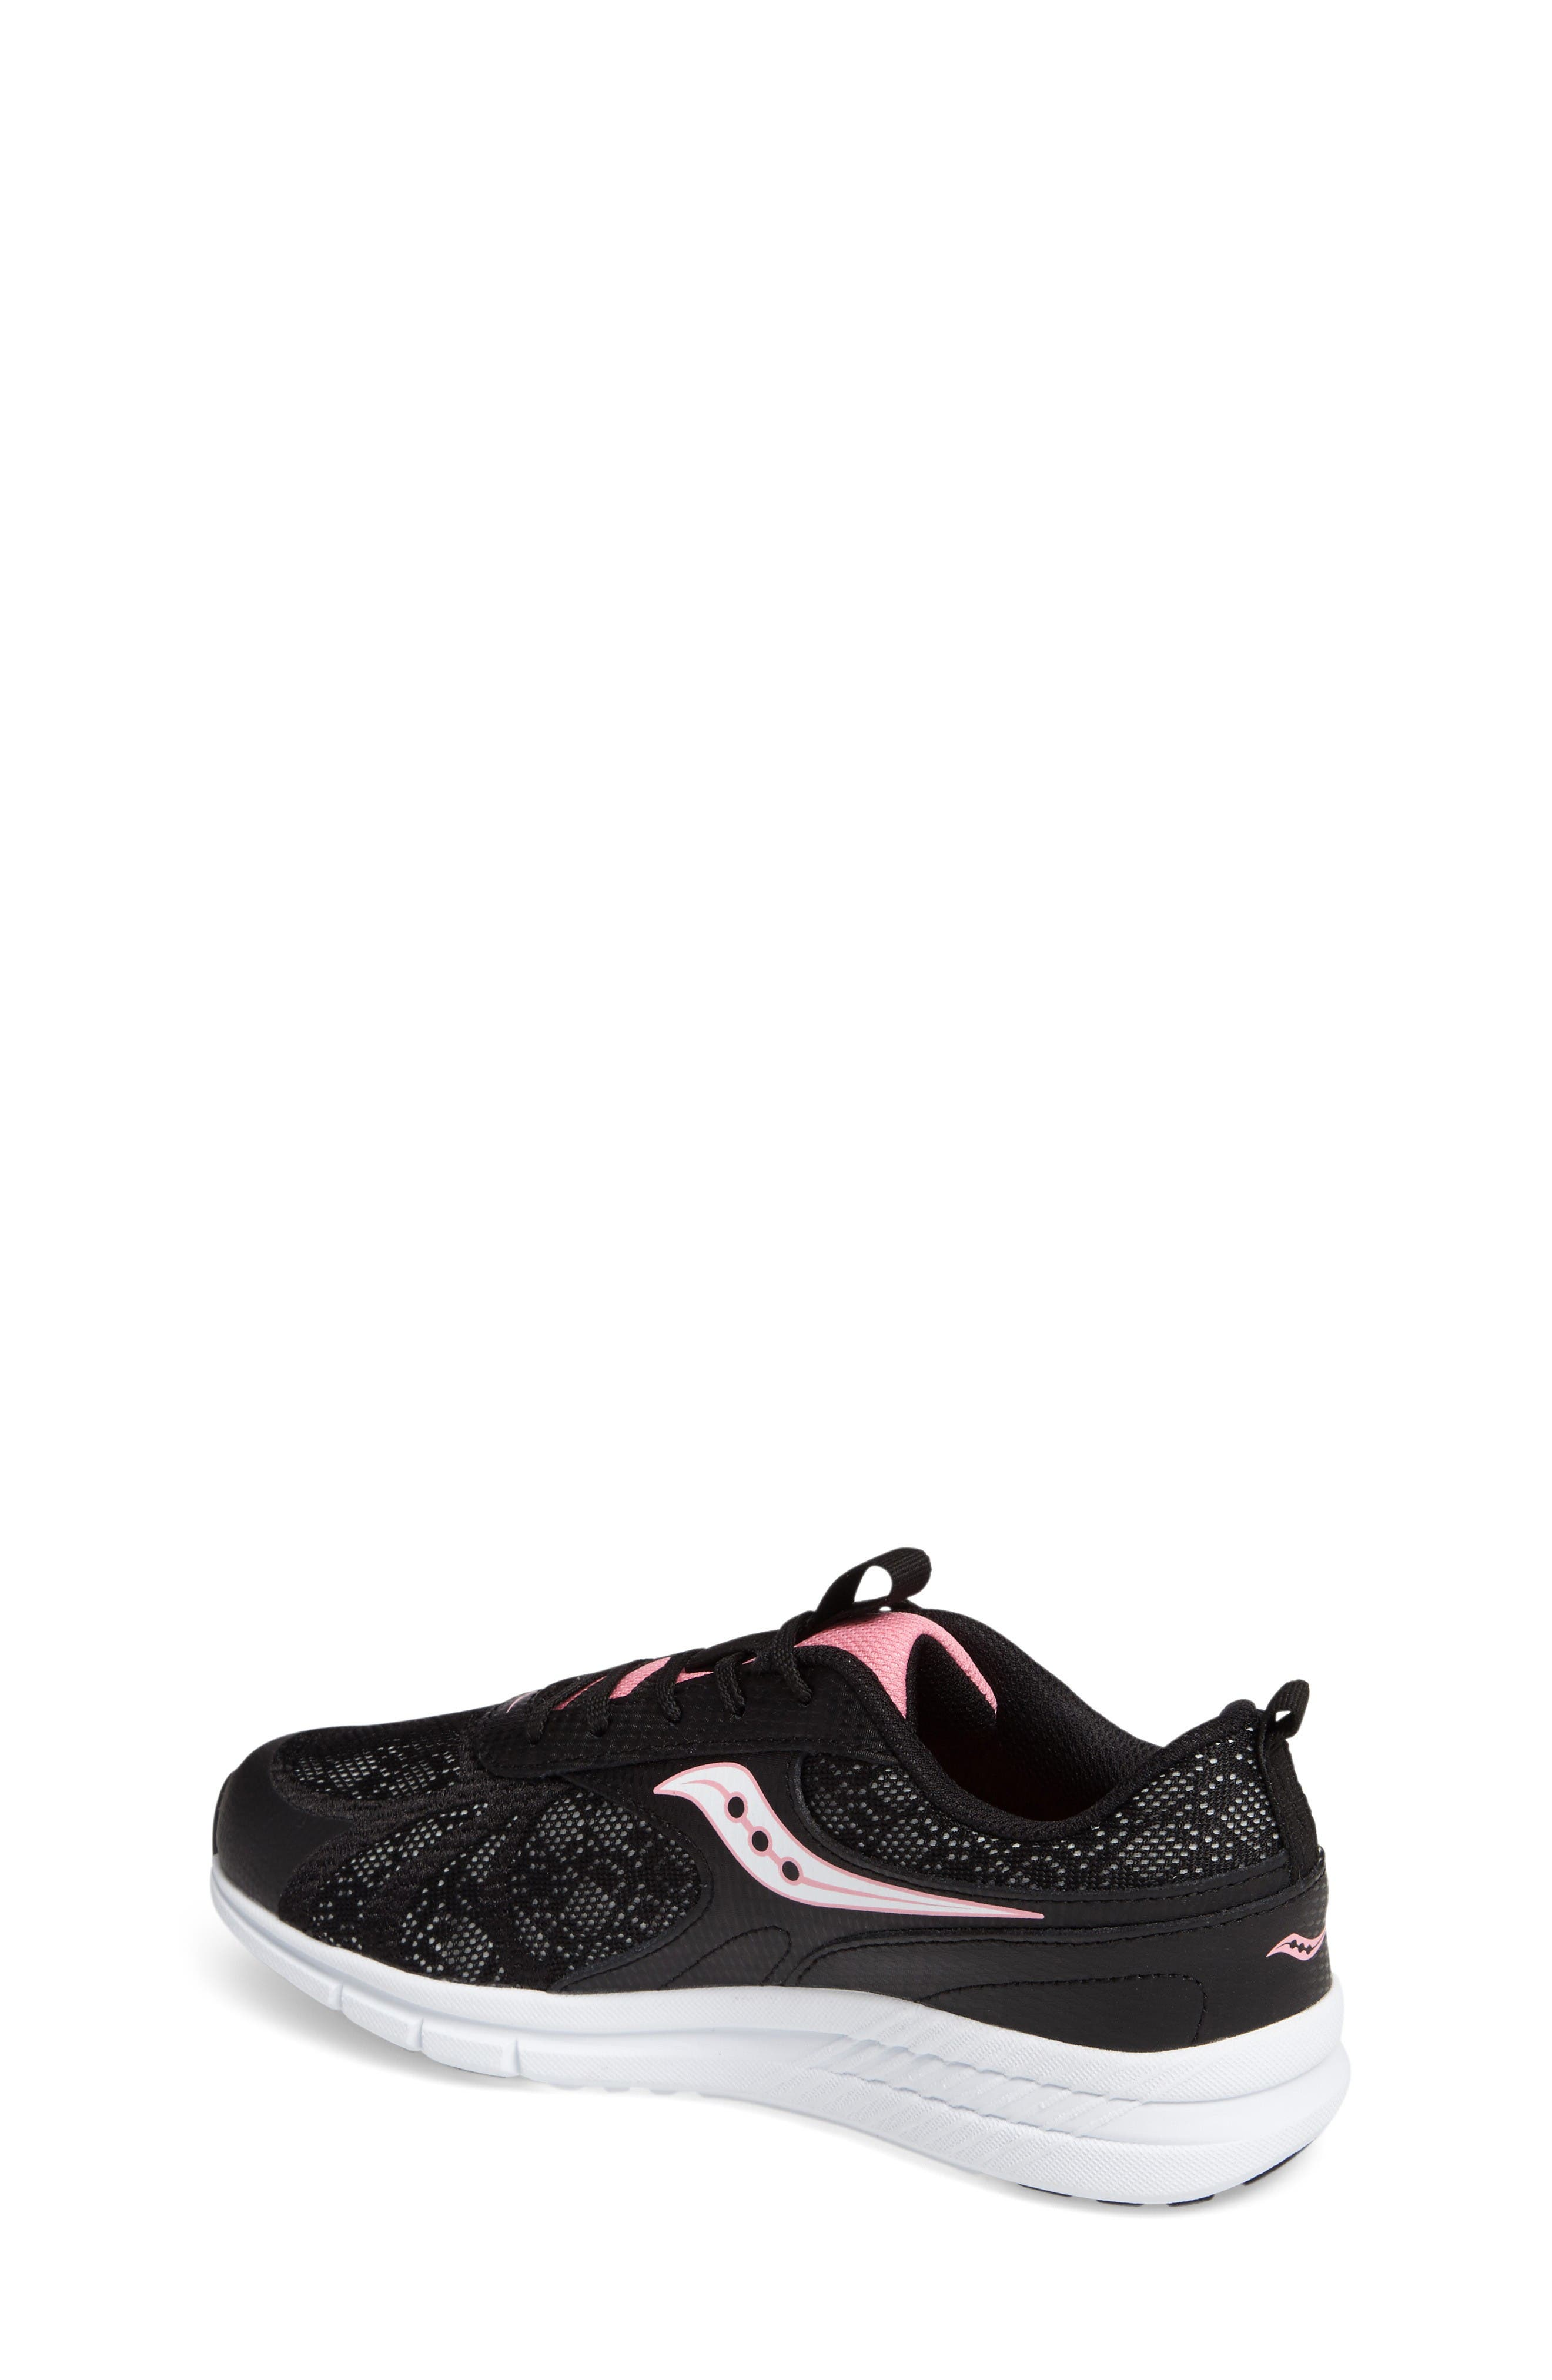 Alternate Image 2  - Saucony Velocity Sneaker (Toddler, Little Kid & Big Kid)